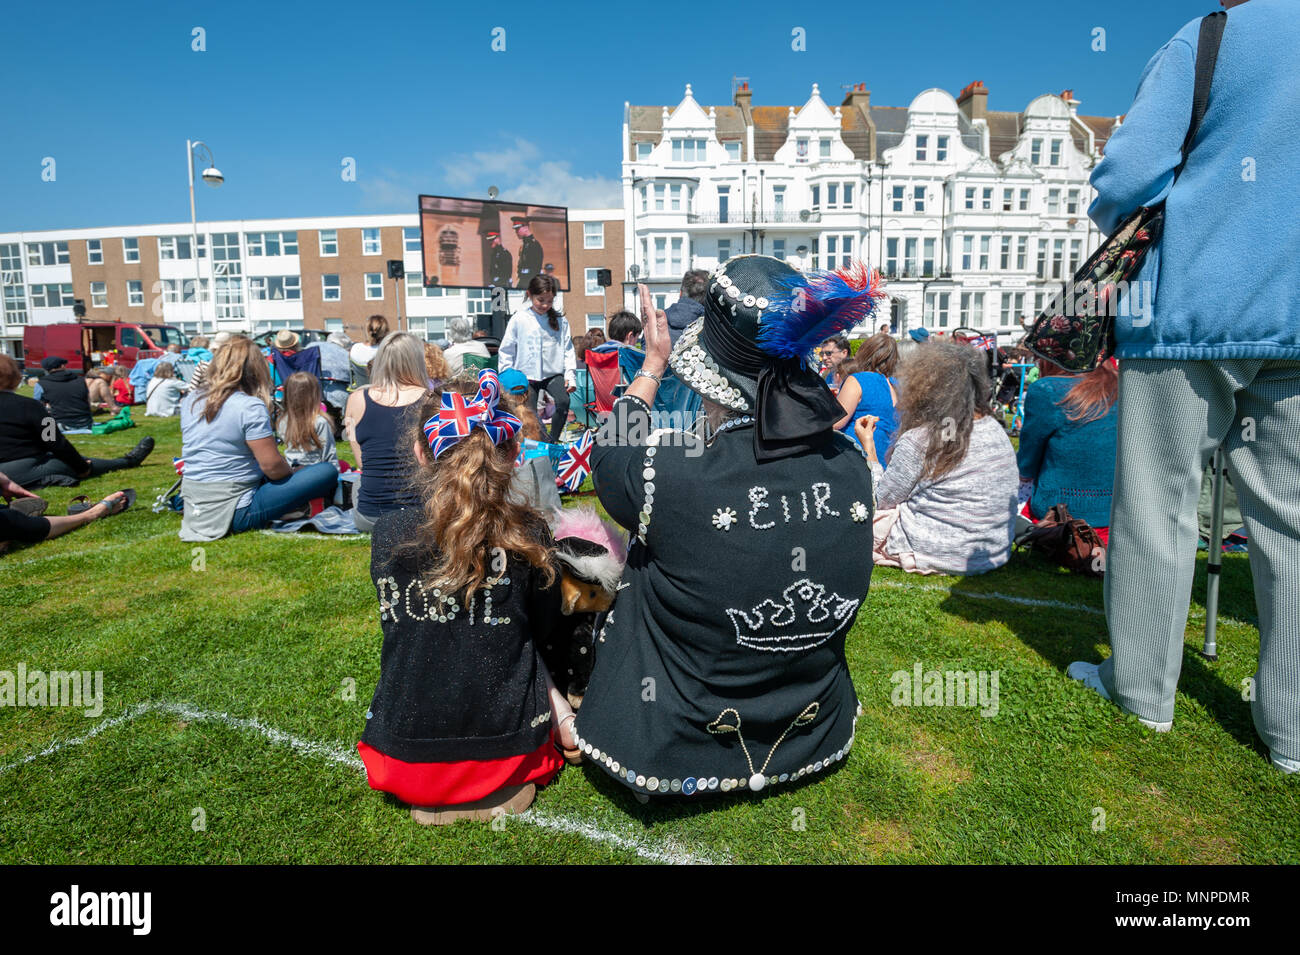 Dressed as Pearly Queens, a grandmother and her granddaughter cheer while watching Prince Harry and Meghan Markle's wedding on a big screen at a Royal wedding event at Bexhill On Sea in East Sussex, England. - Stock Image